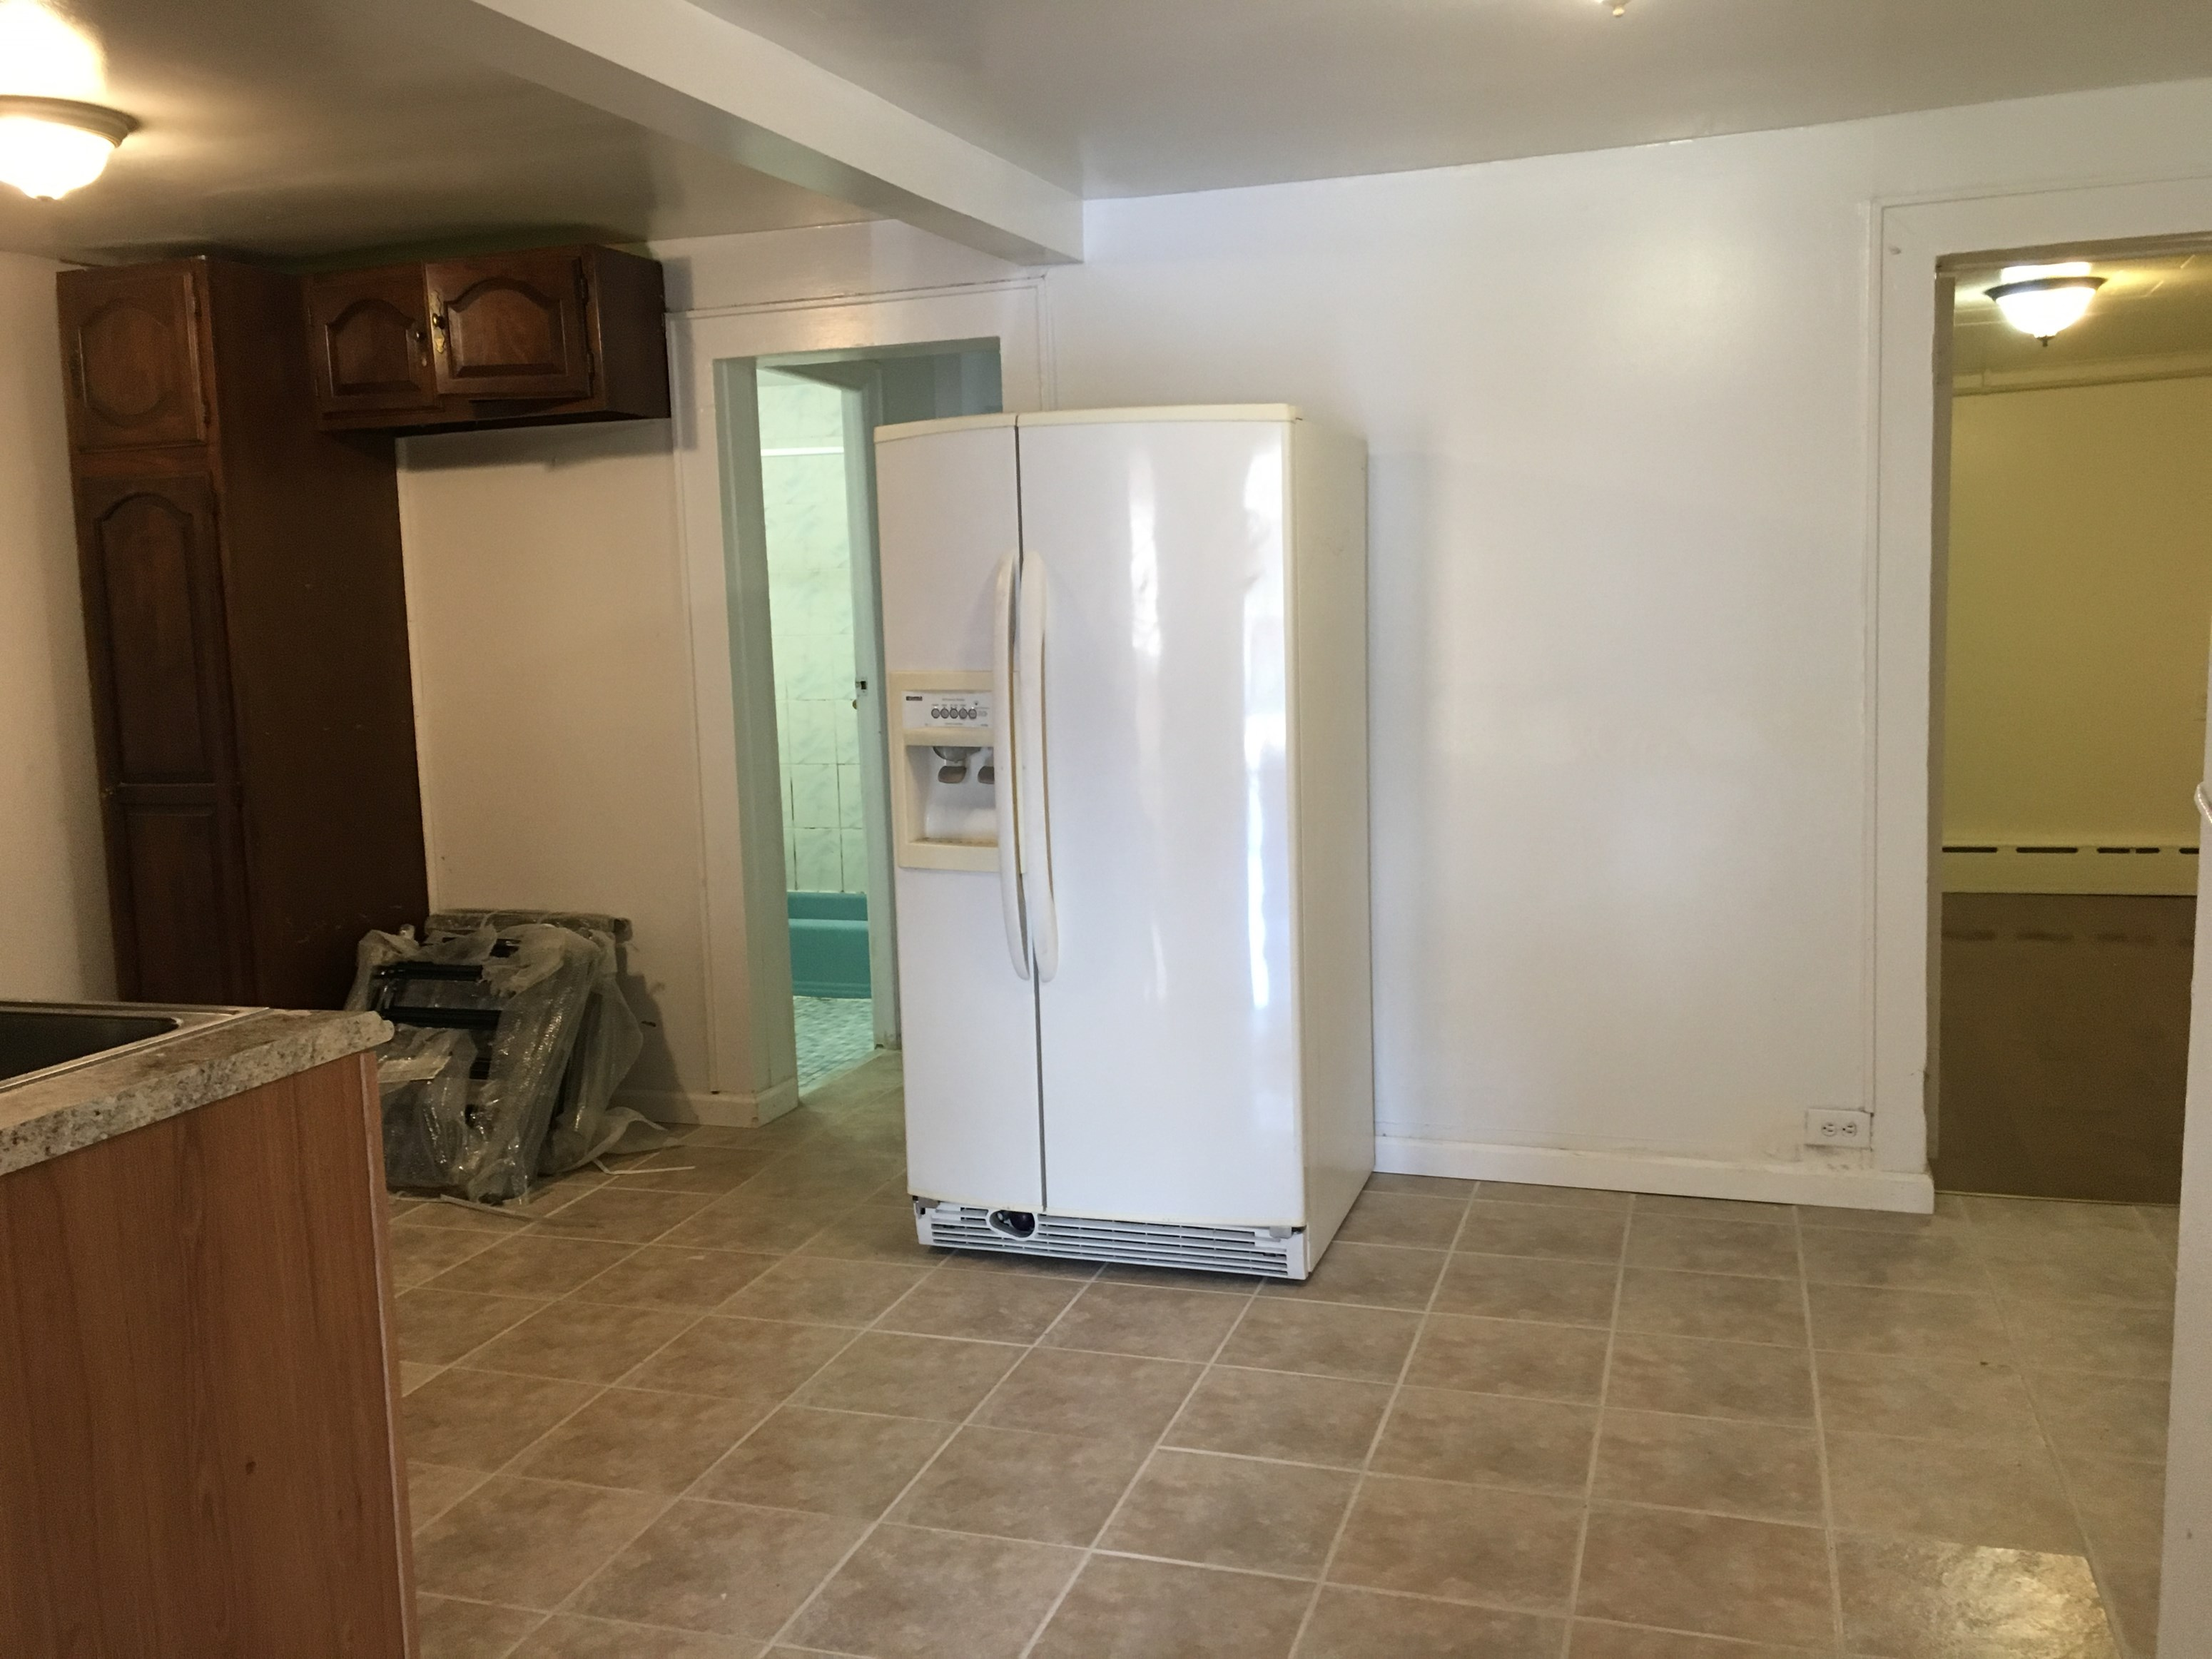 3 Bedroom Apartments Nj | 3 Bedrooms 4 Bedrooms 1 Bedroom Apt In Journal Square Jersey City 3 Bhk Apartments And Flats In Jersey City Nj 1225152 Sulekha Rentals